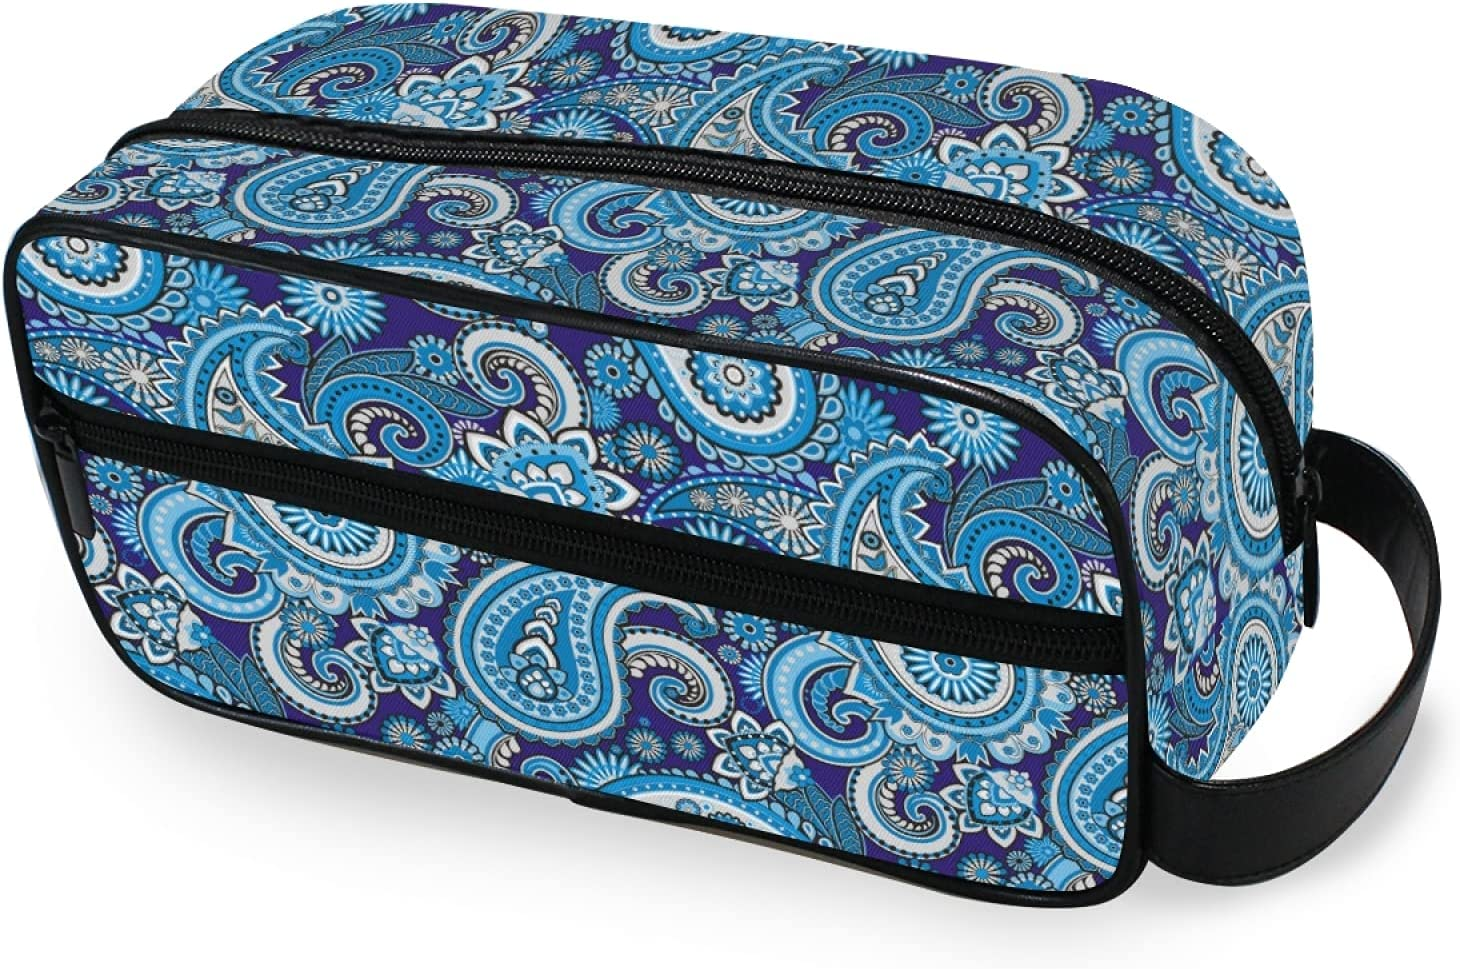 FORMEETY Tribal Floral Paisley Hanging Toiletry Portable Fees free!! Bag Manufacturer direct delivery Cos